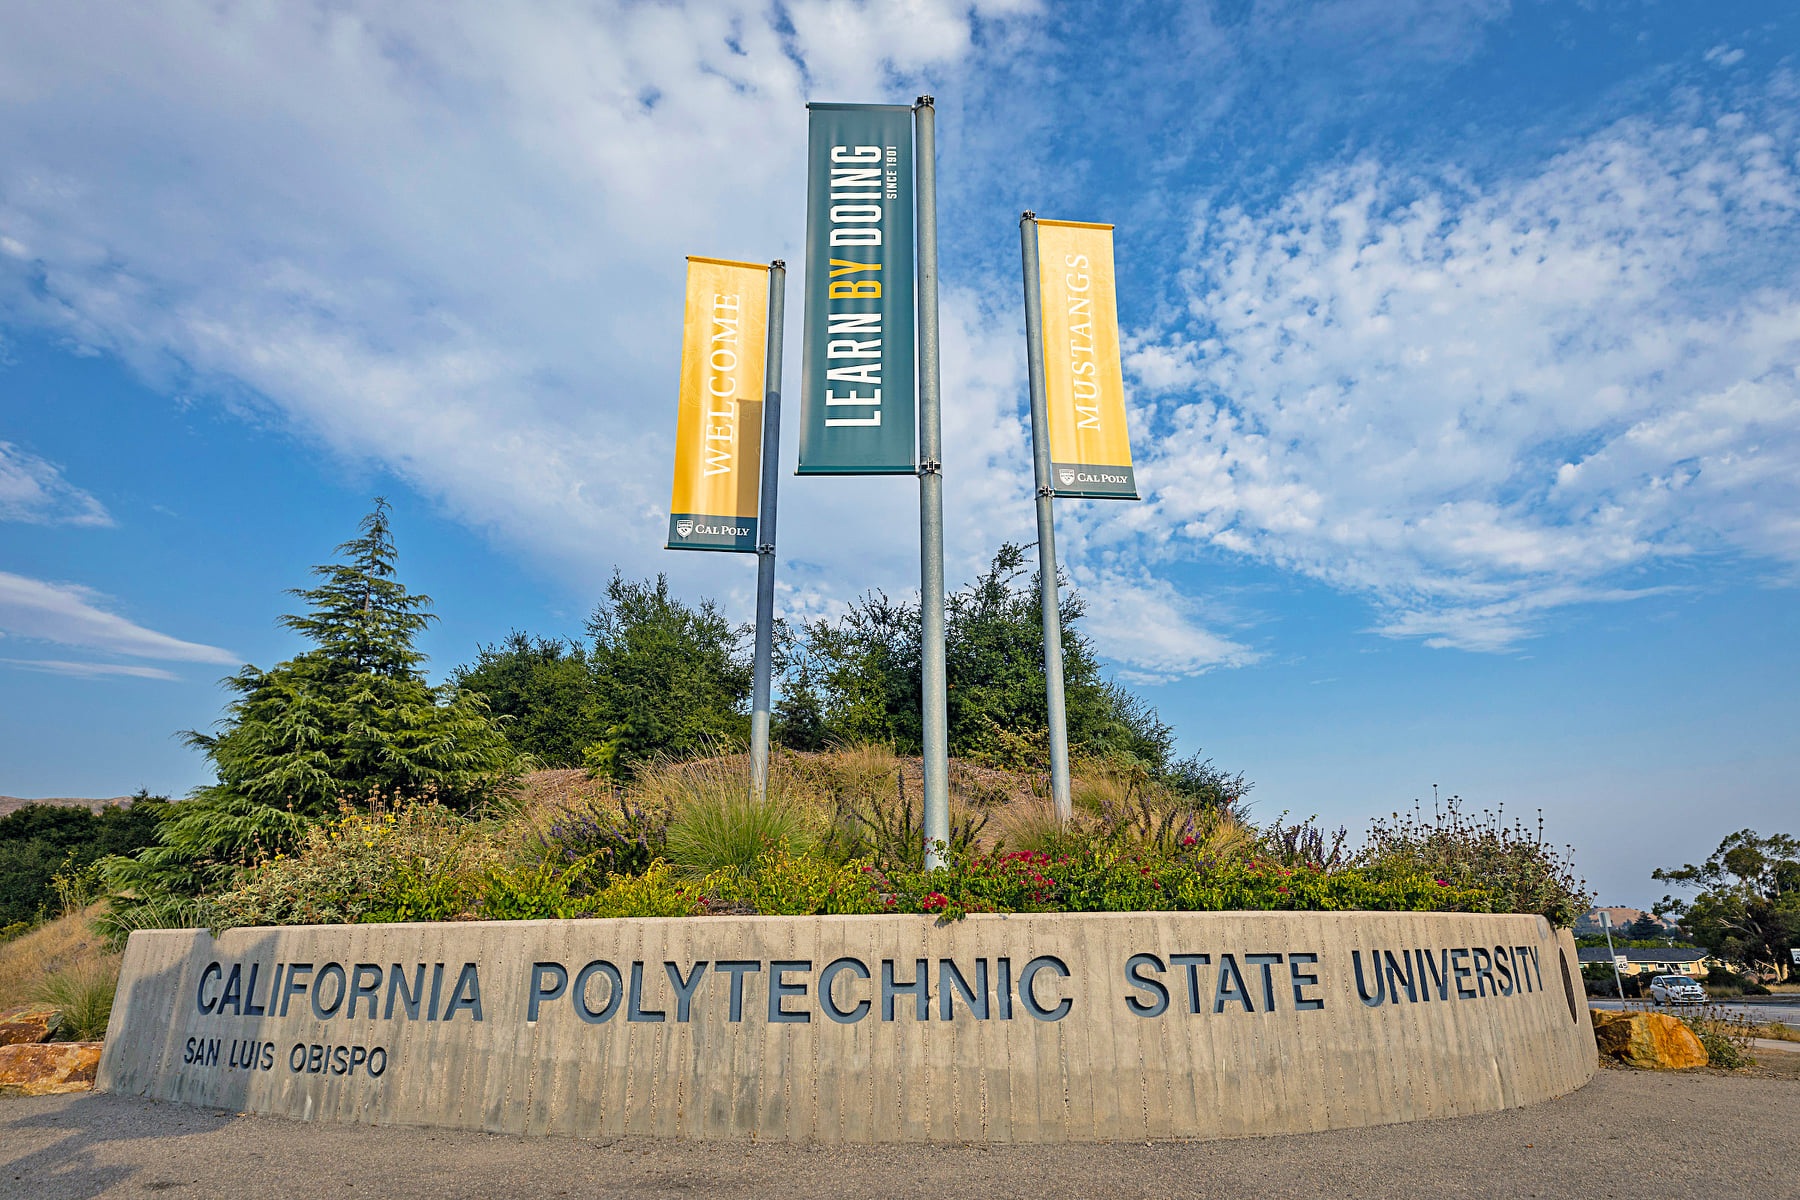 Cal Poly San Luis Obispo is seen in an undated photo from the university's Facebook page.